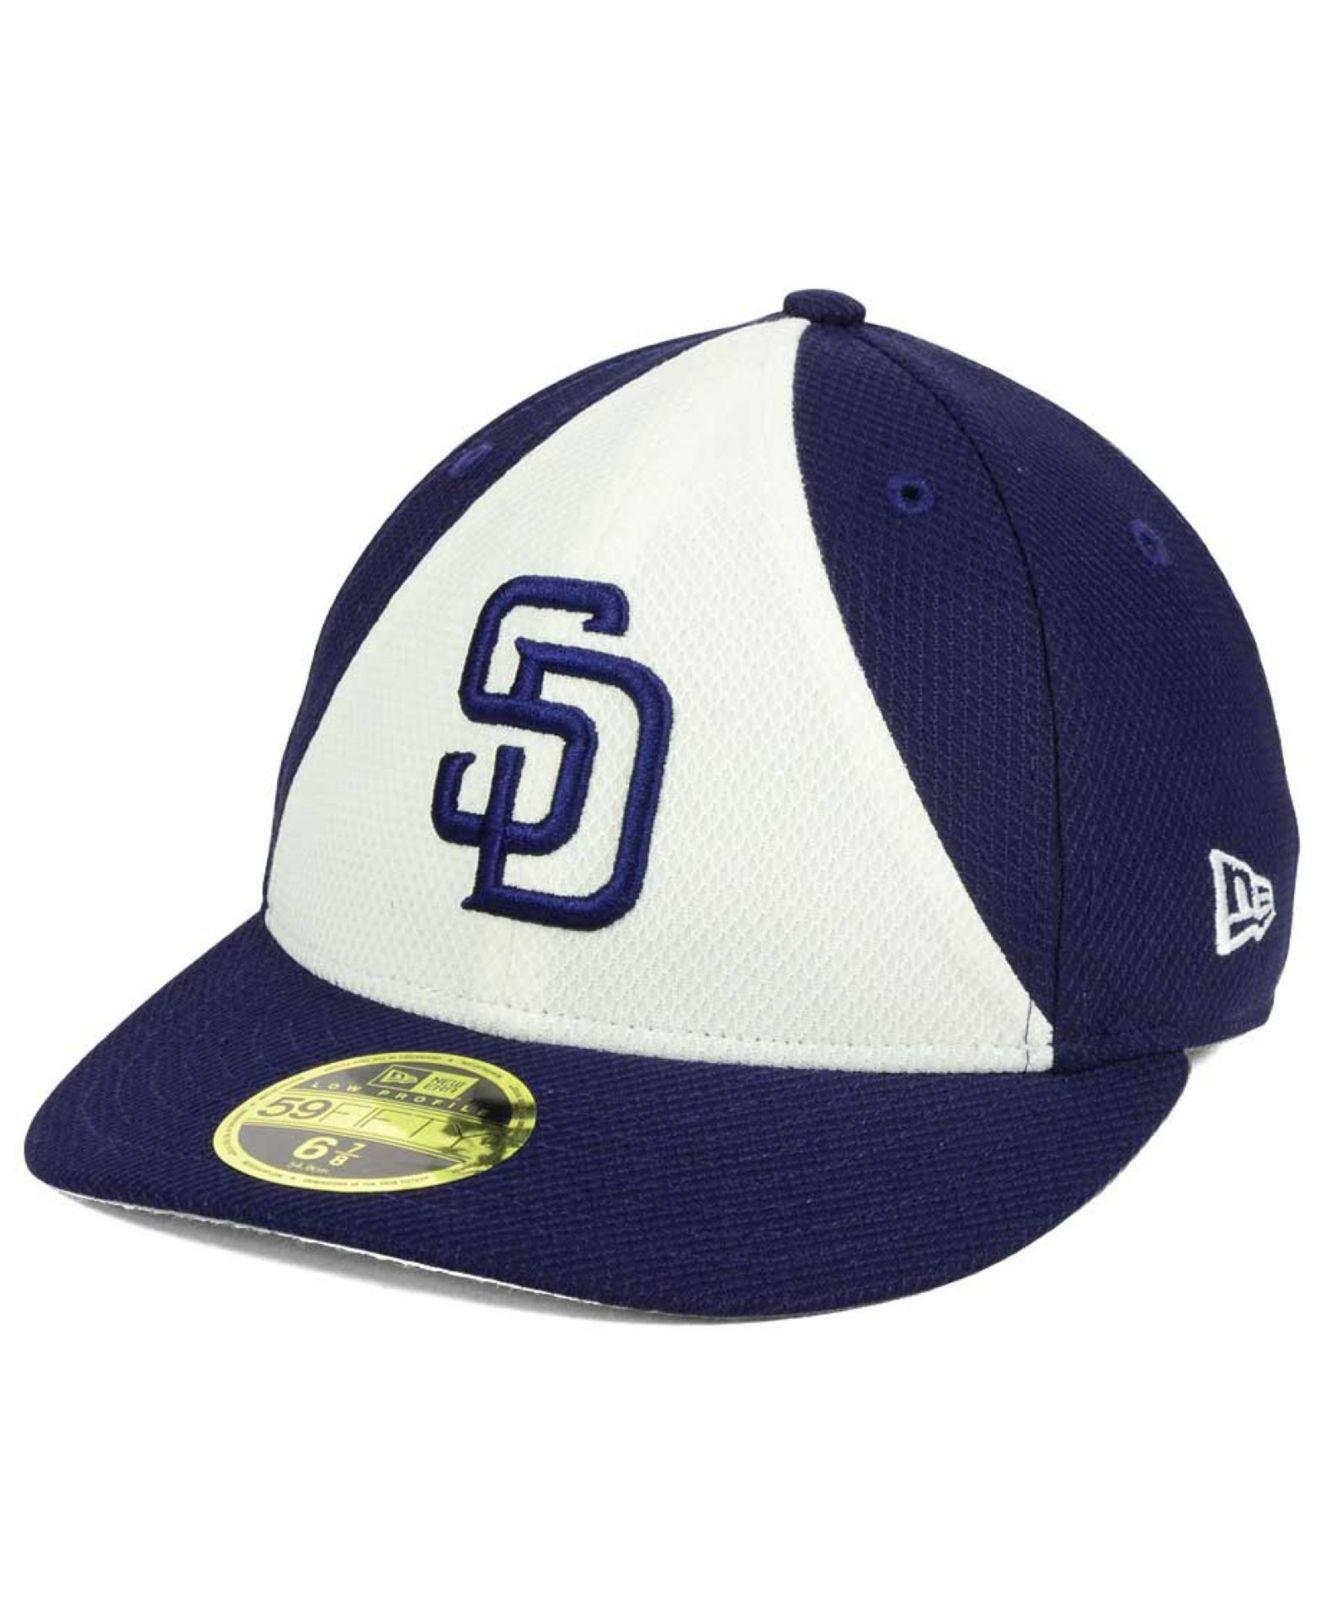 reputable site 4b2cd cd61f ... coupon code for lyst ktz batting practice diamond era low profile 59fifty  cap in f161b 49216